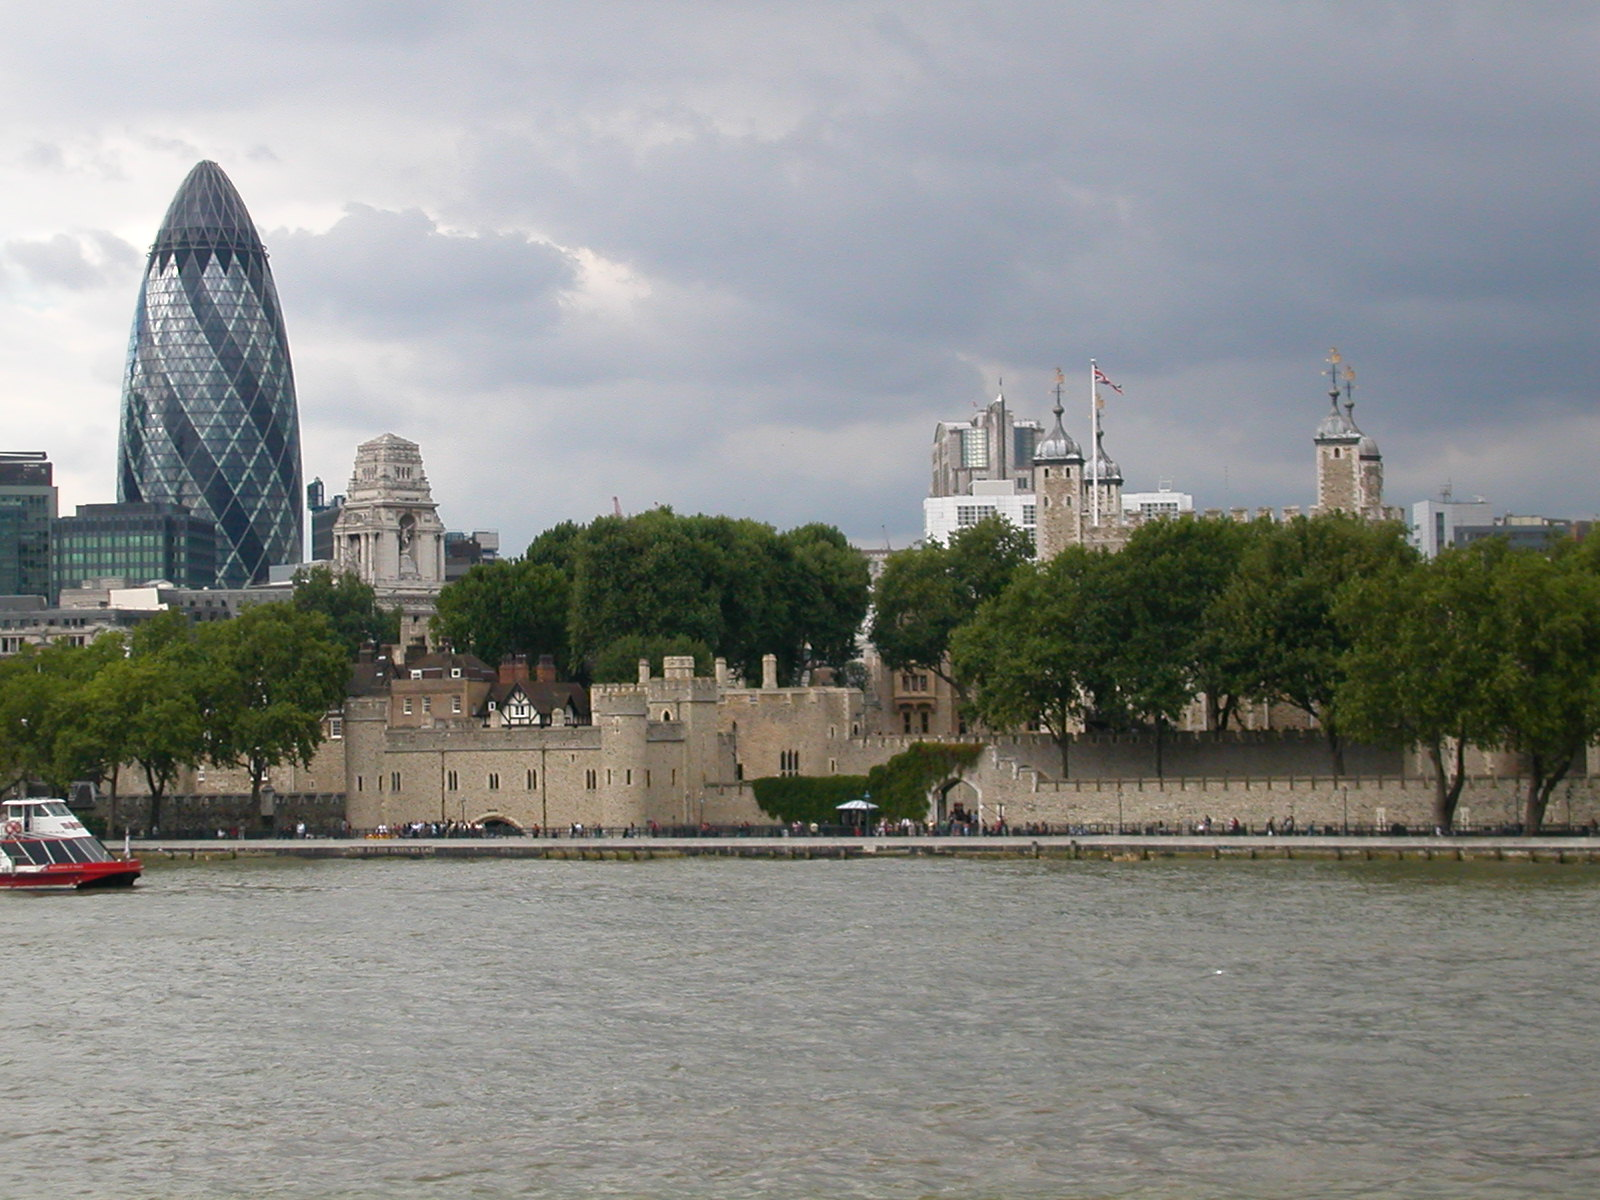 a brand new building occupied by an insurance company and the Tower of London